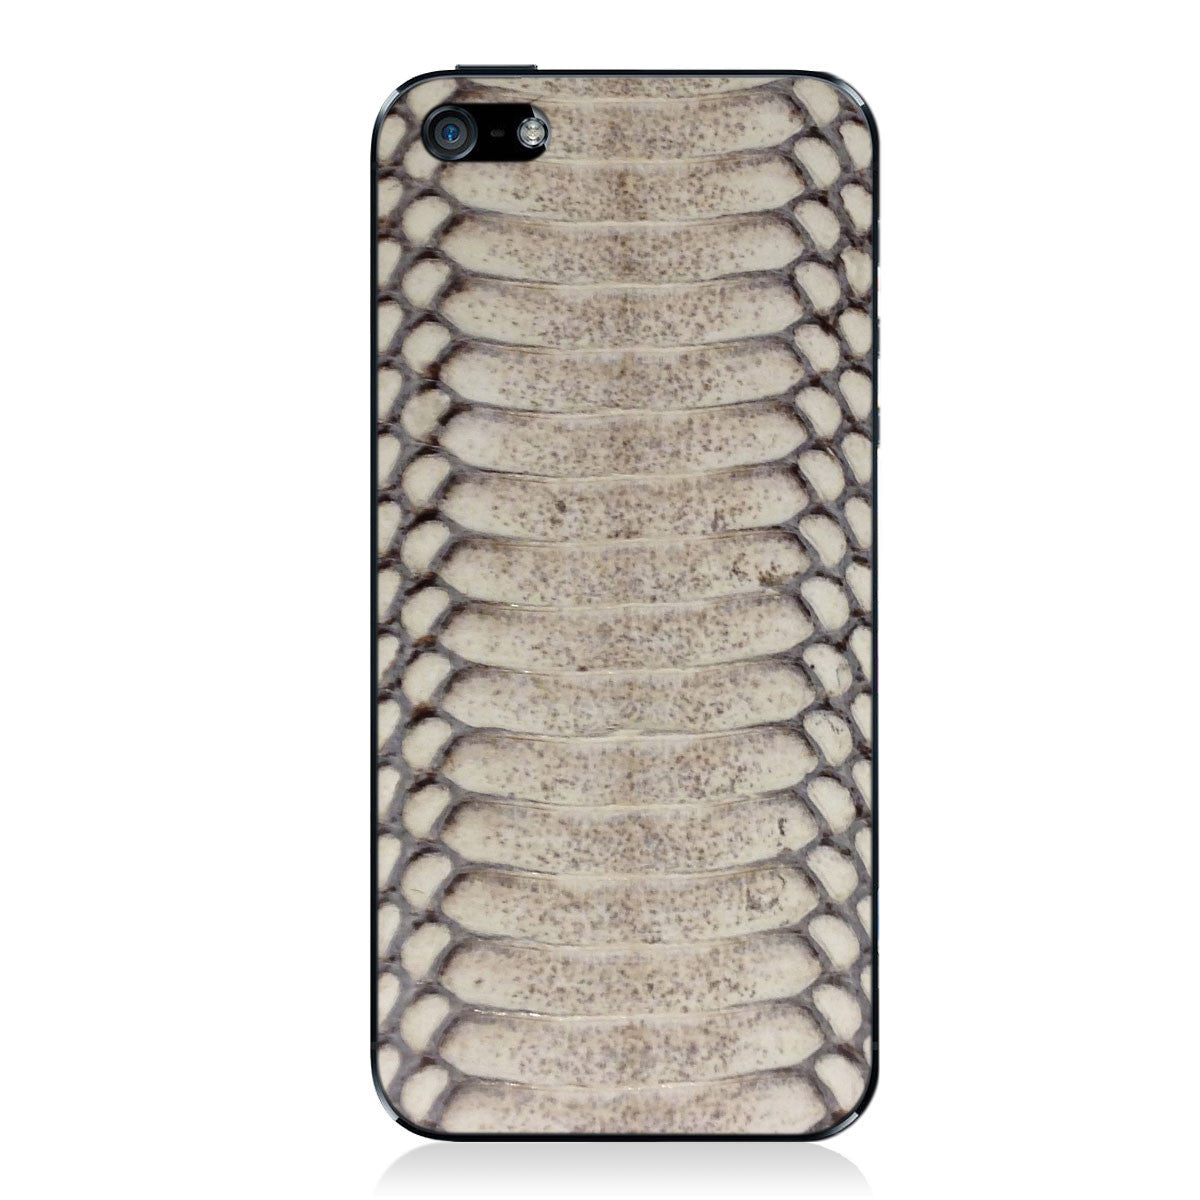 Cobra Belly iPhone 5 - 5S - SE Leather Skin